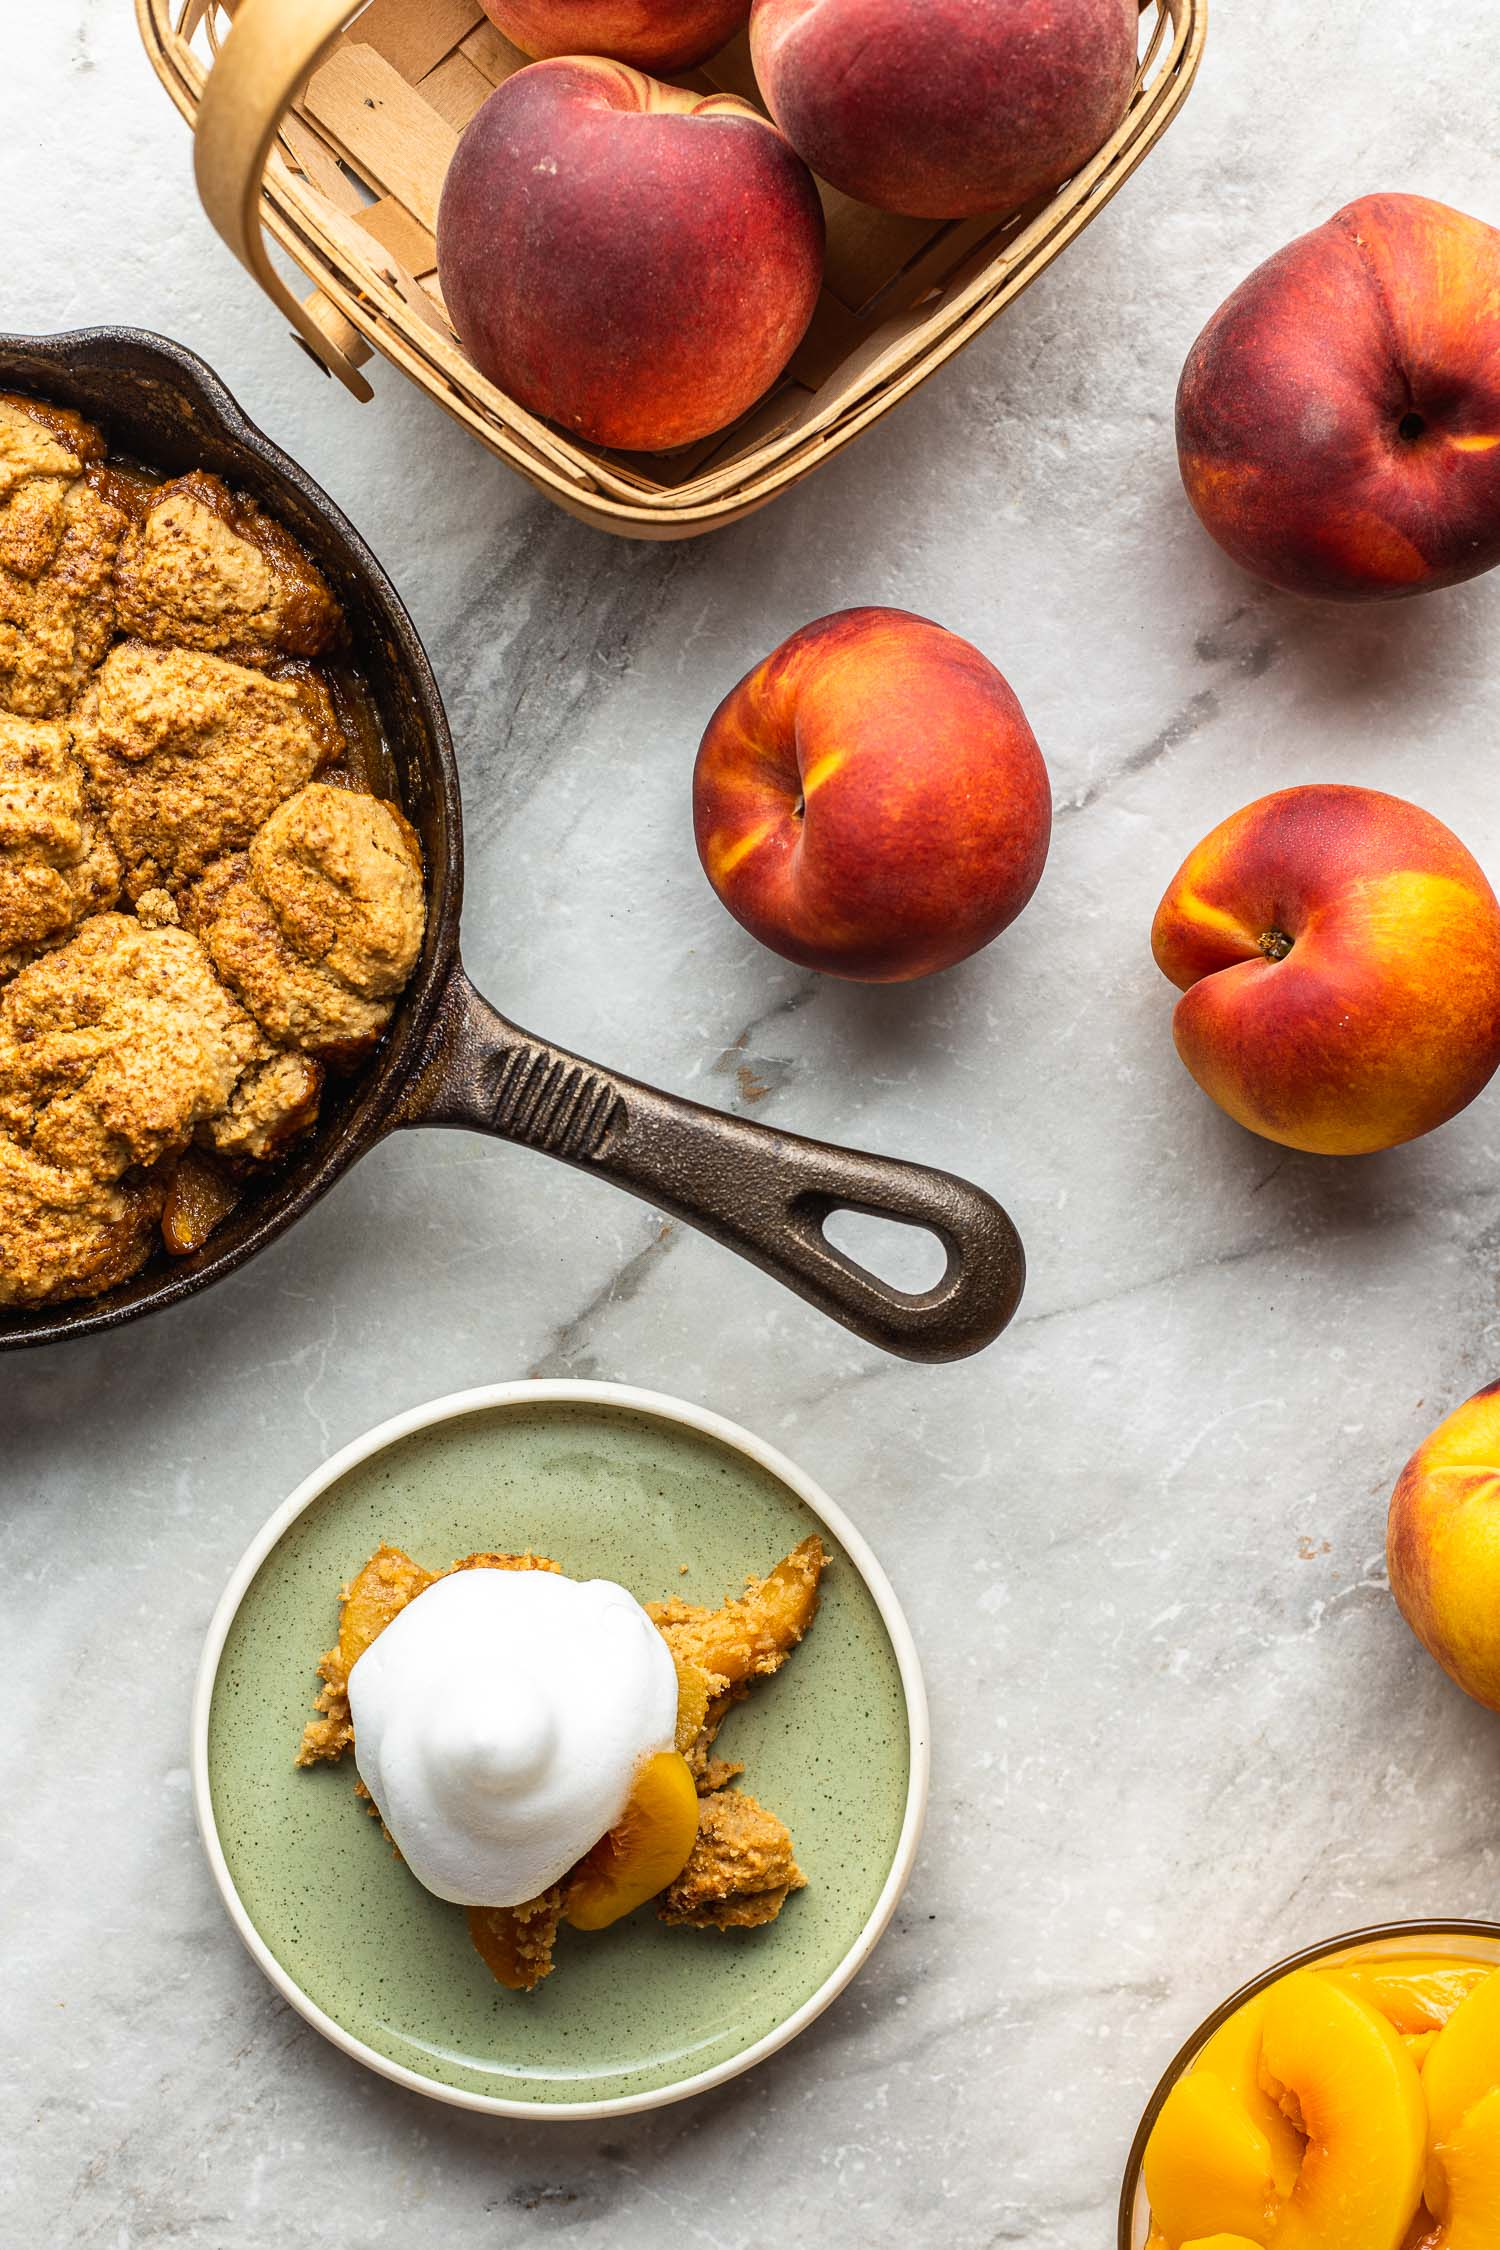 cooking scene on a gray and white marble background with an iron skillet of baked gluten free and vegan peach cobbler, whole peaches, and a serving of cobbler on a mint green plate topped with guit free aquafaba whipped cream